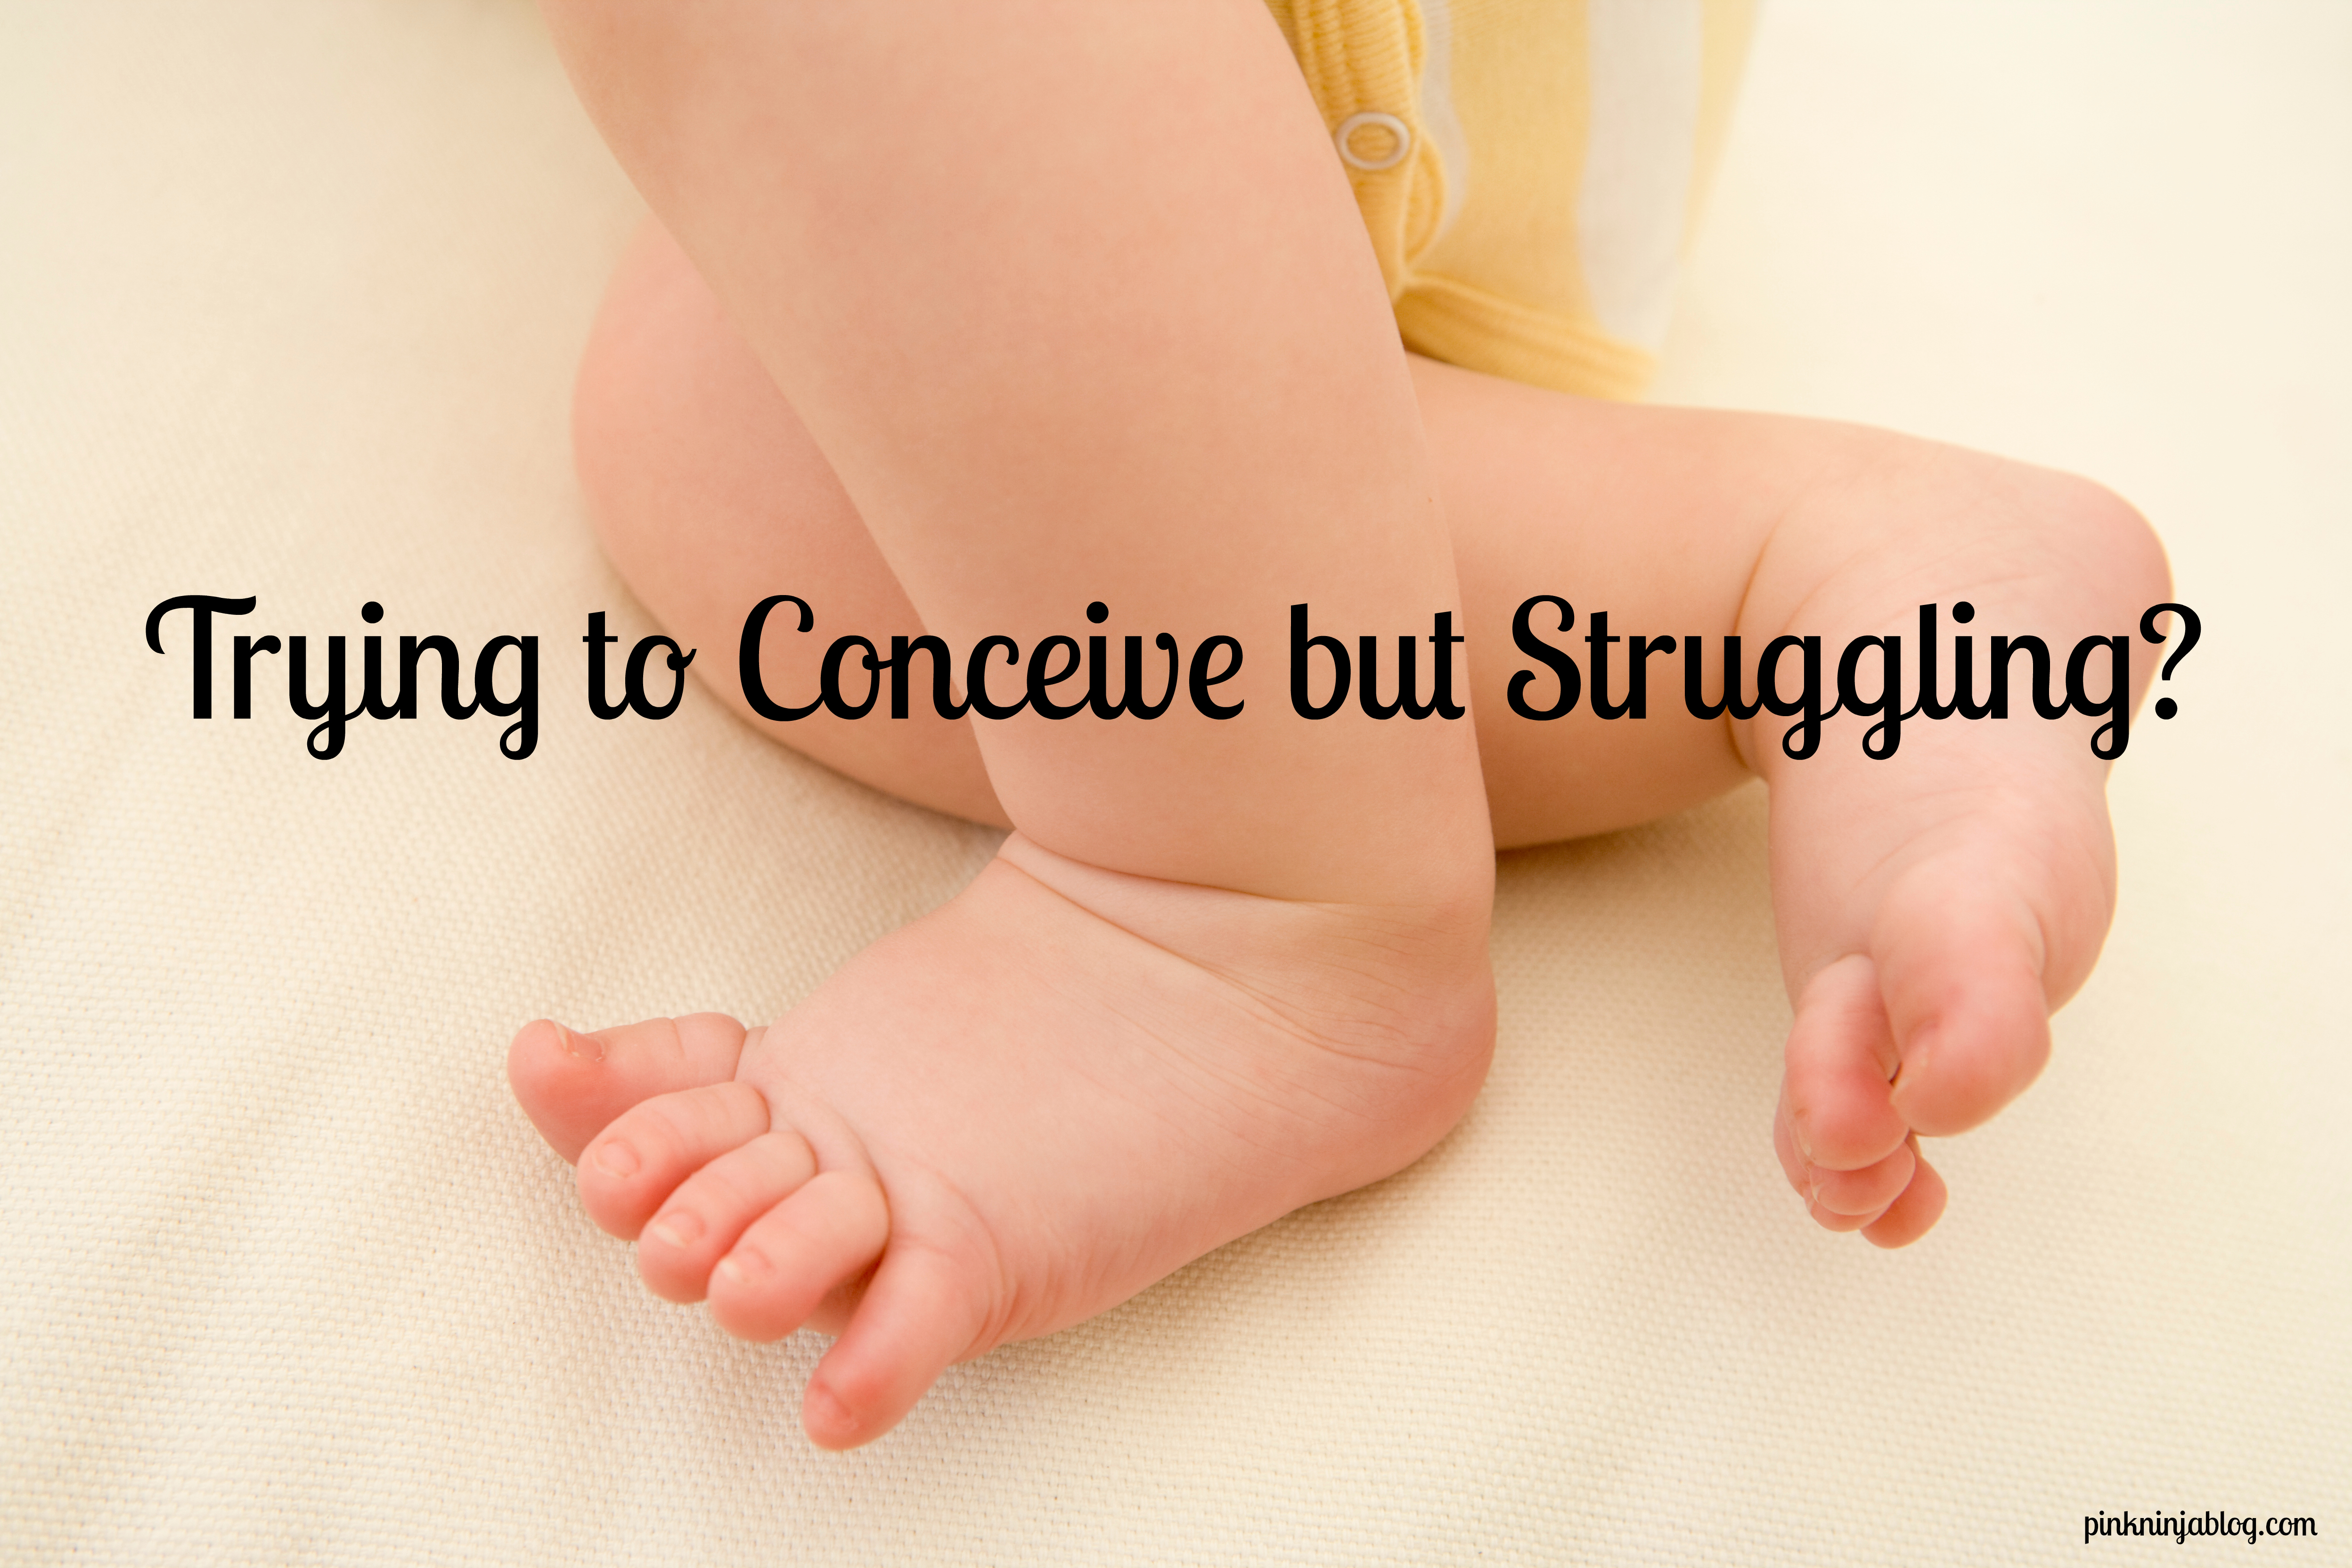 Trying to Conceive but Struggling?